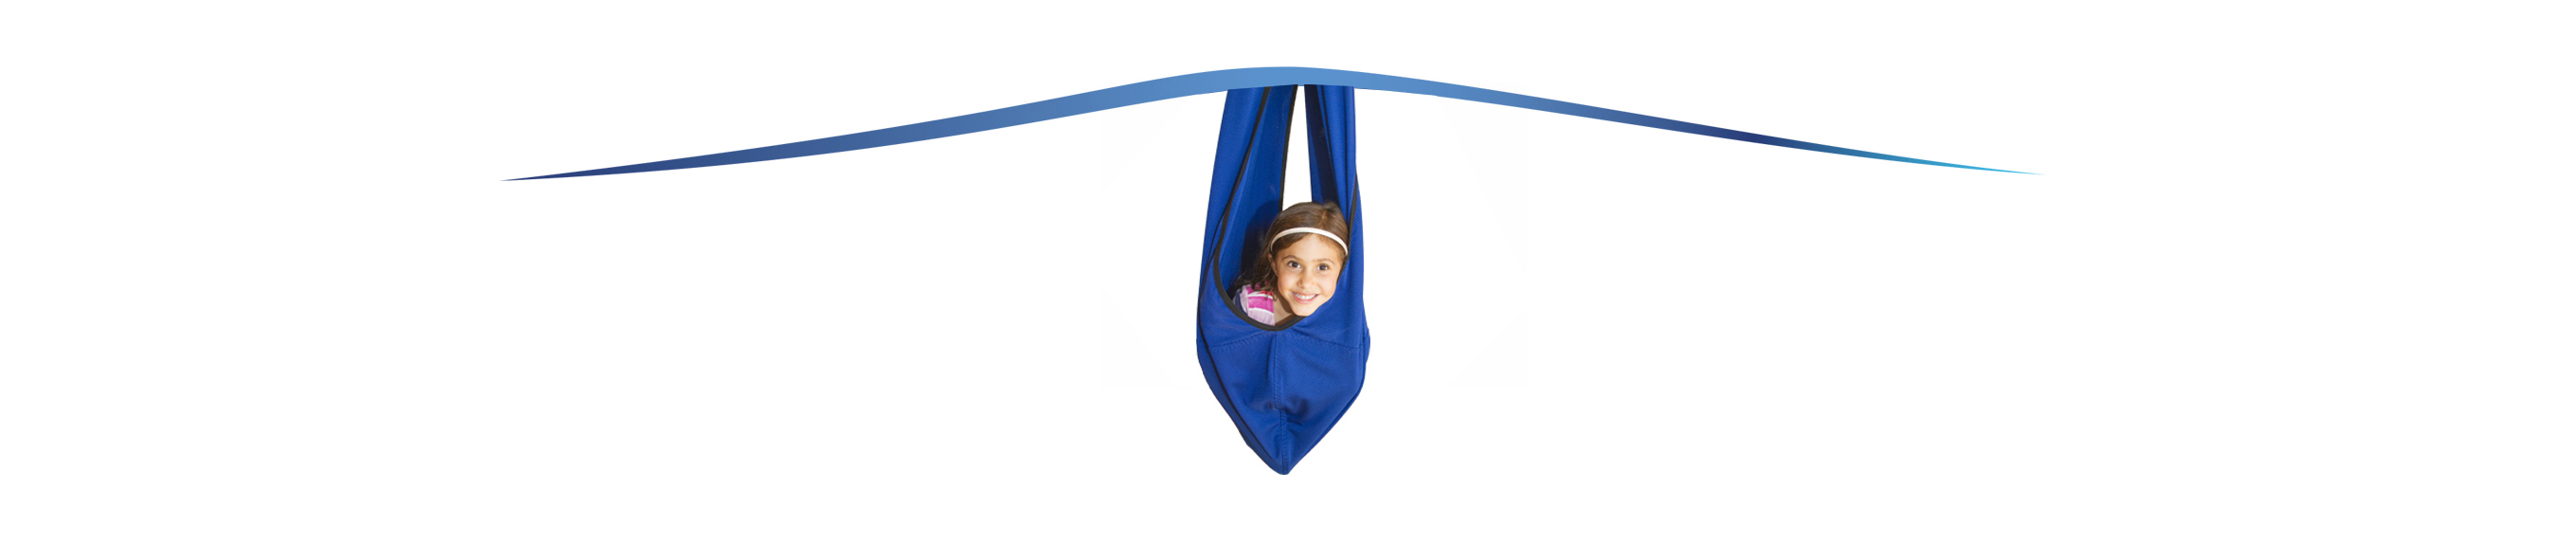 Therapy-cuddle-swing-blue-